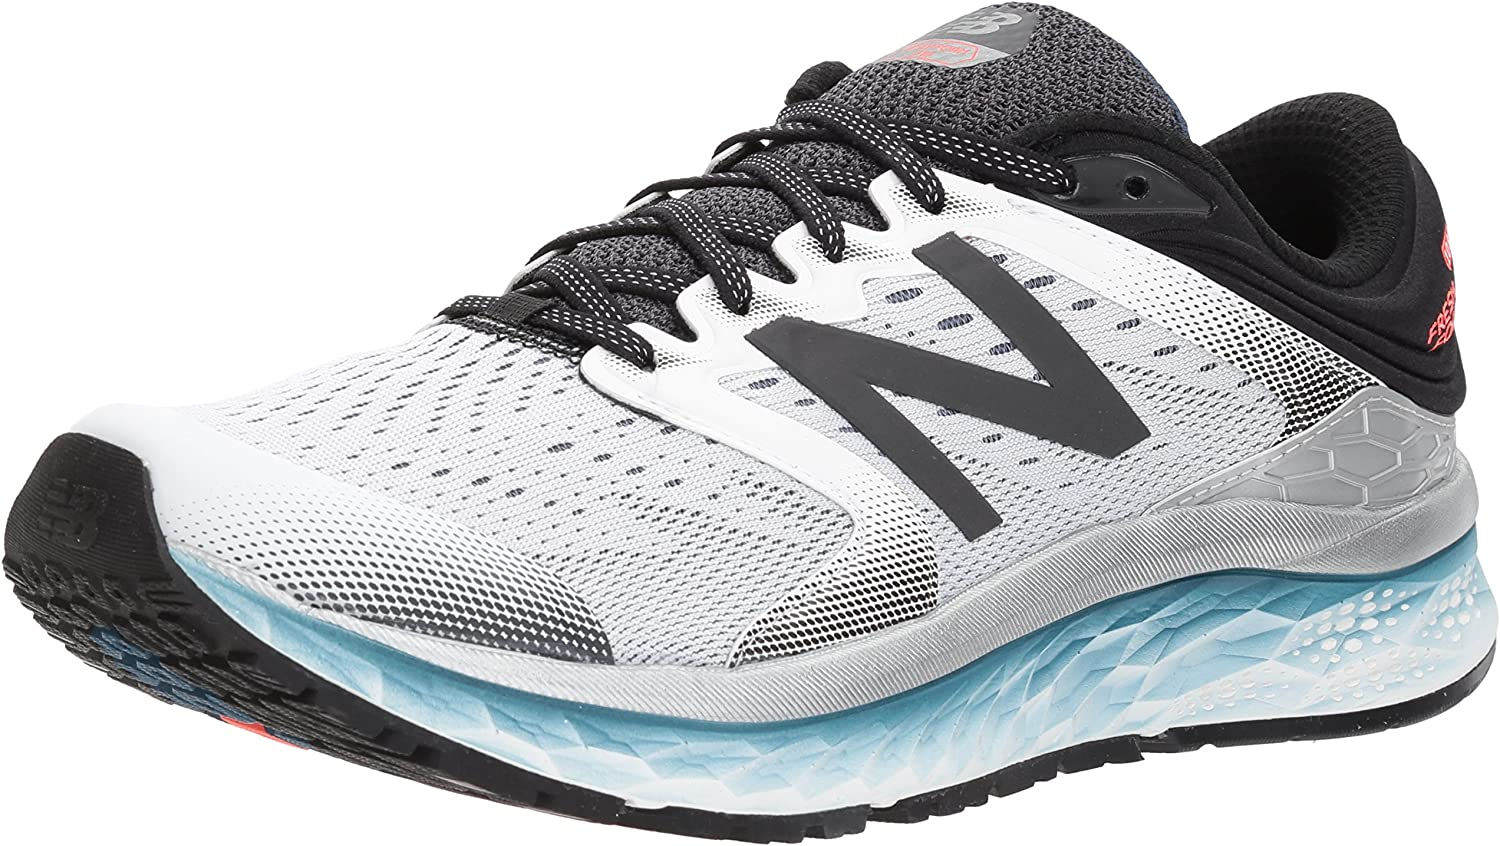 pellizco Inminente Lugar de la noche  Amazon.com | New Balance Men's Fresh Foam 1080 V8 Running Shoe | Road  Running